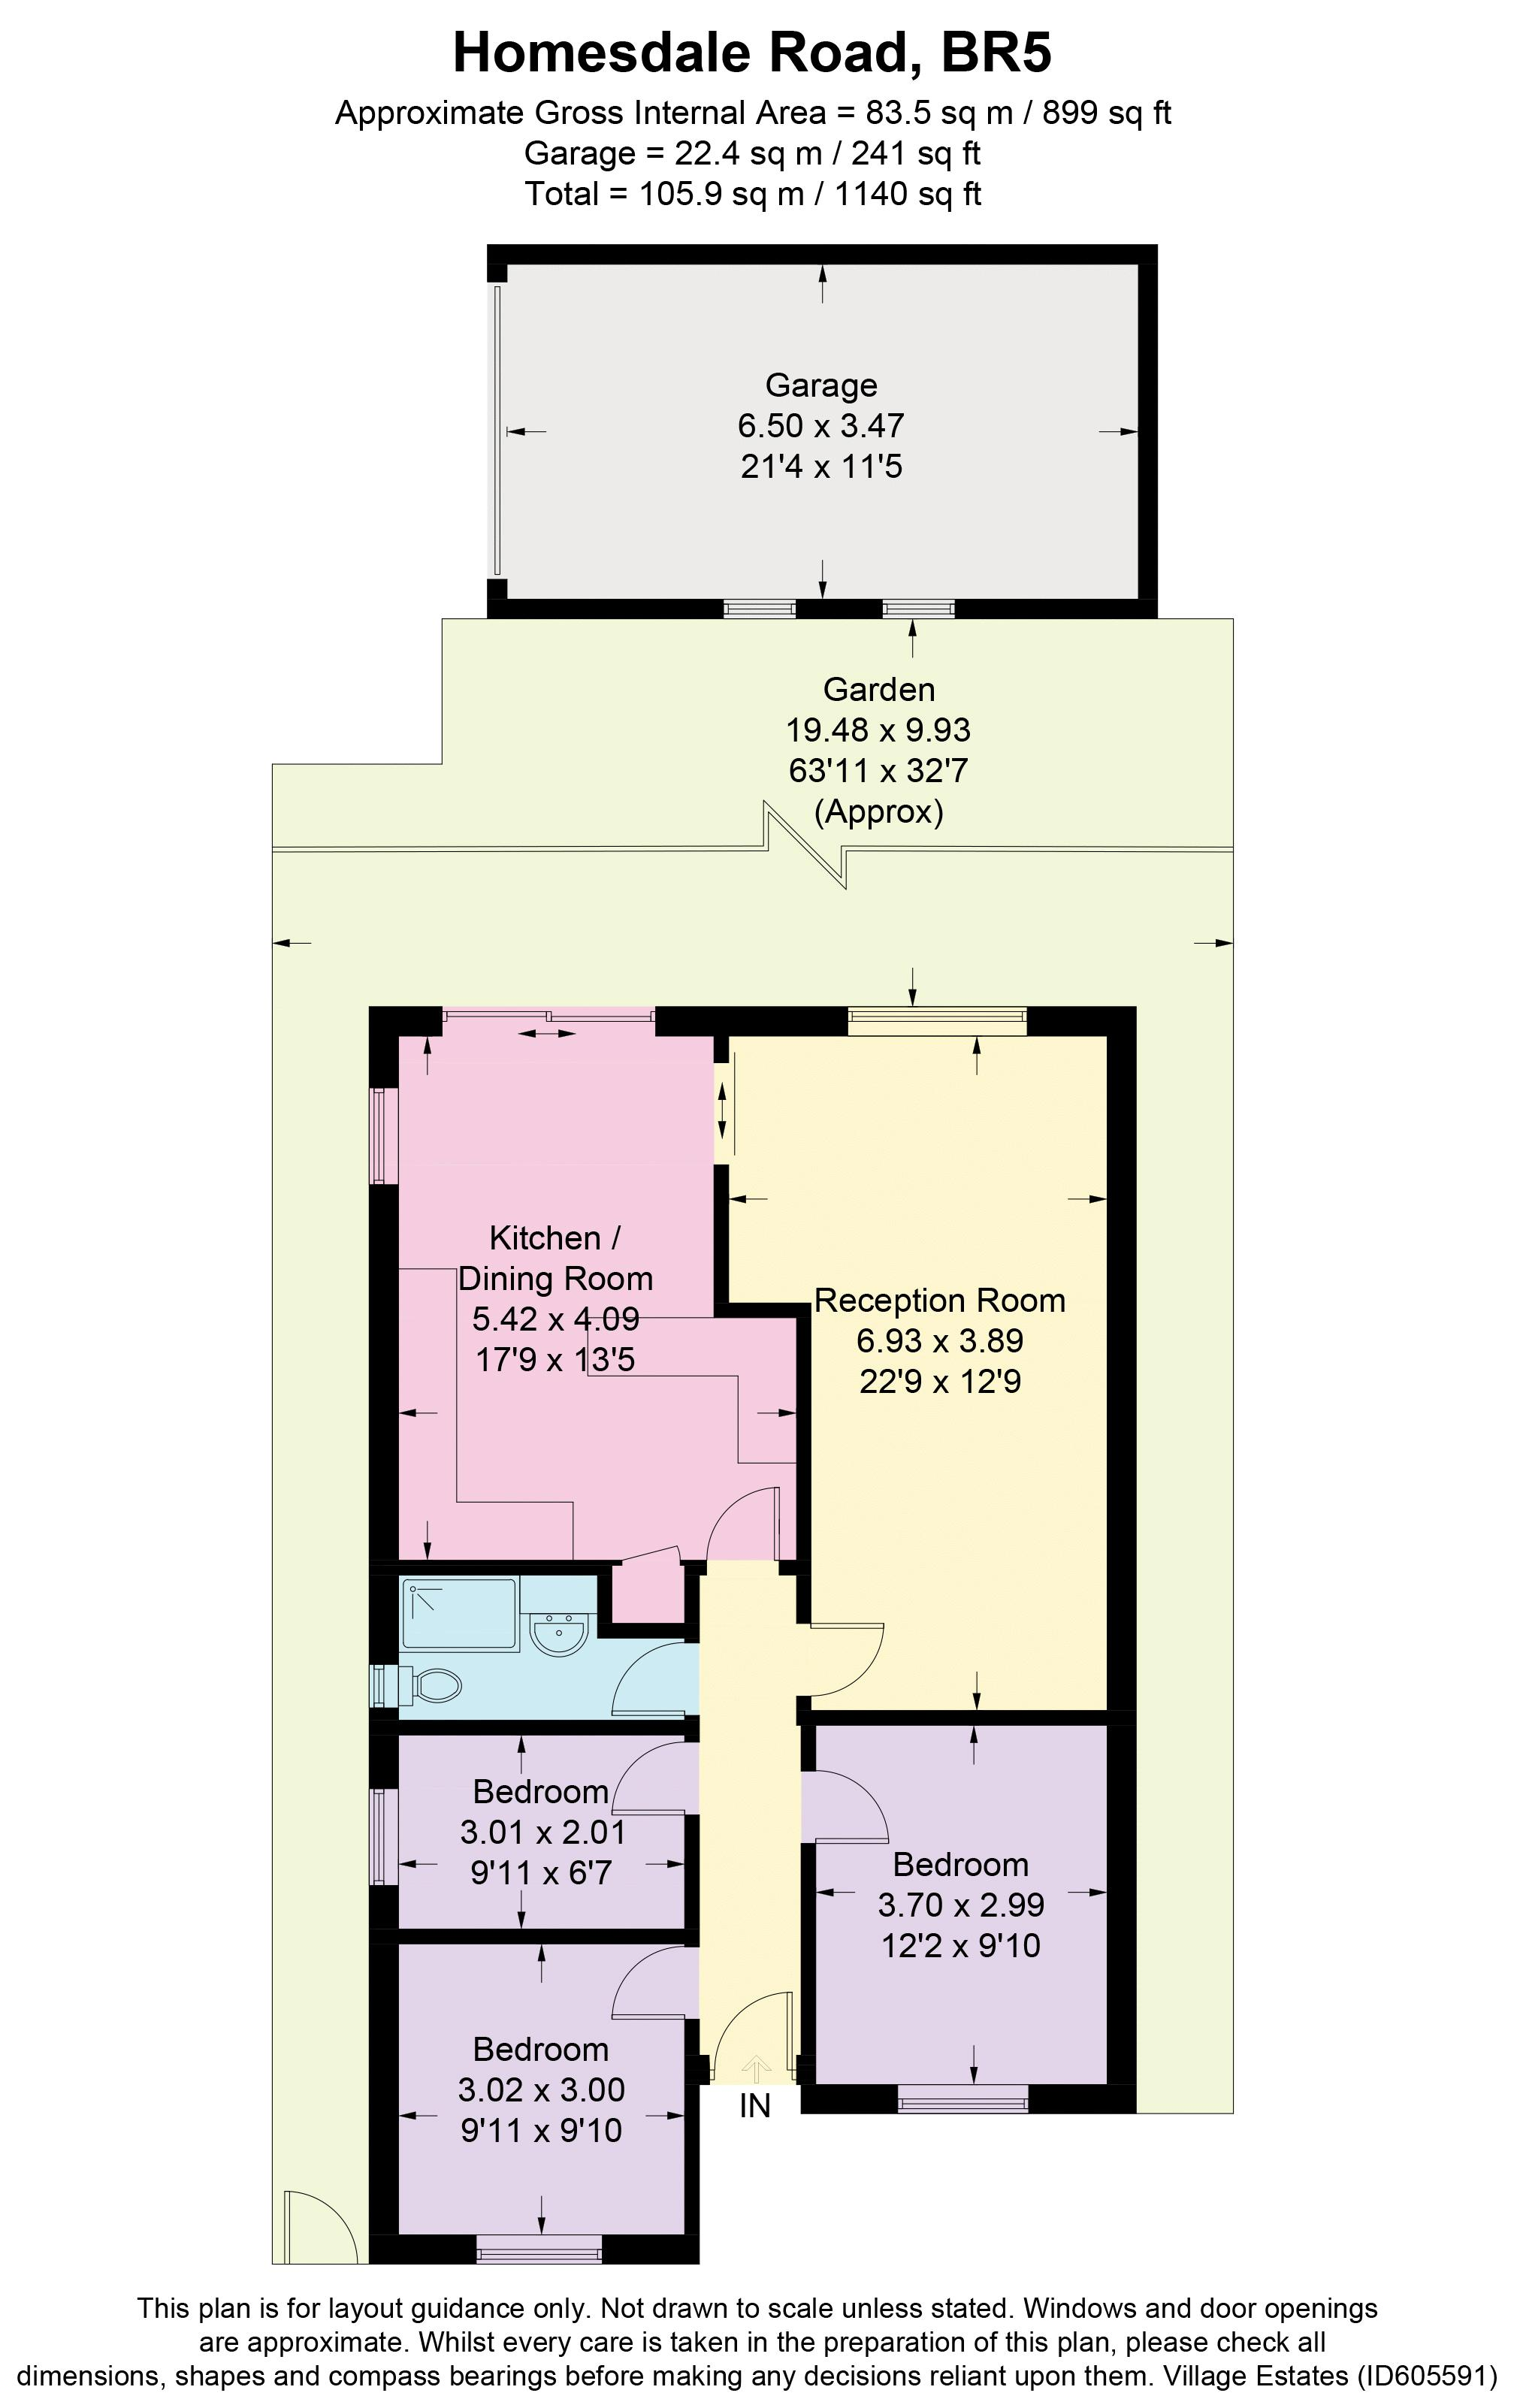 Homesdale Road Floorplan